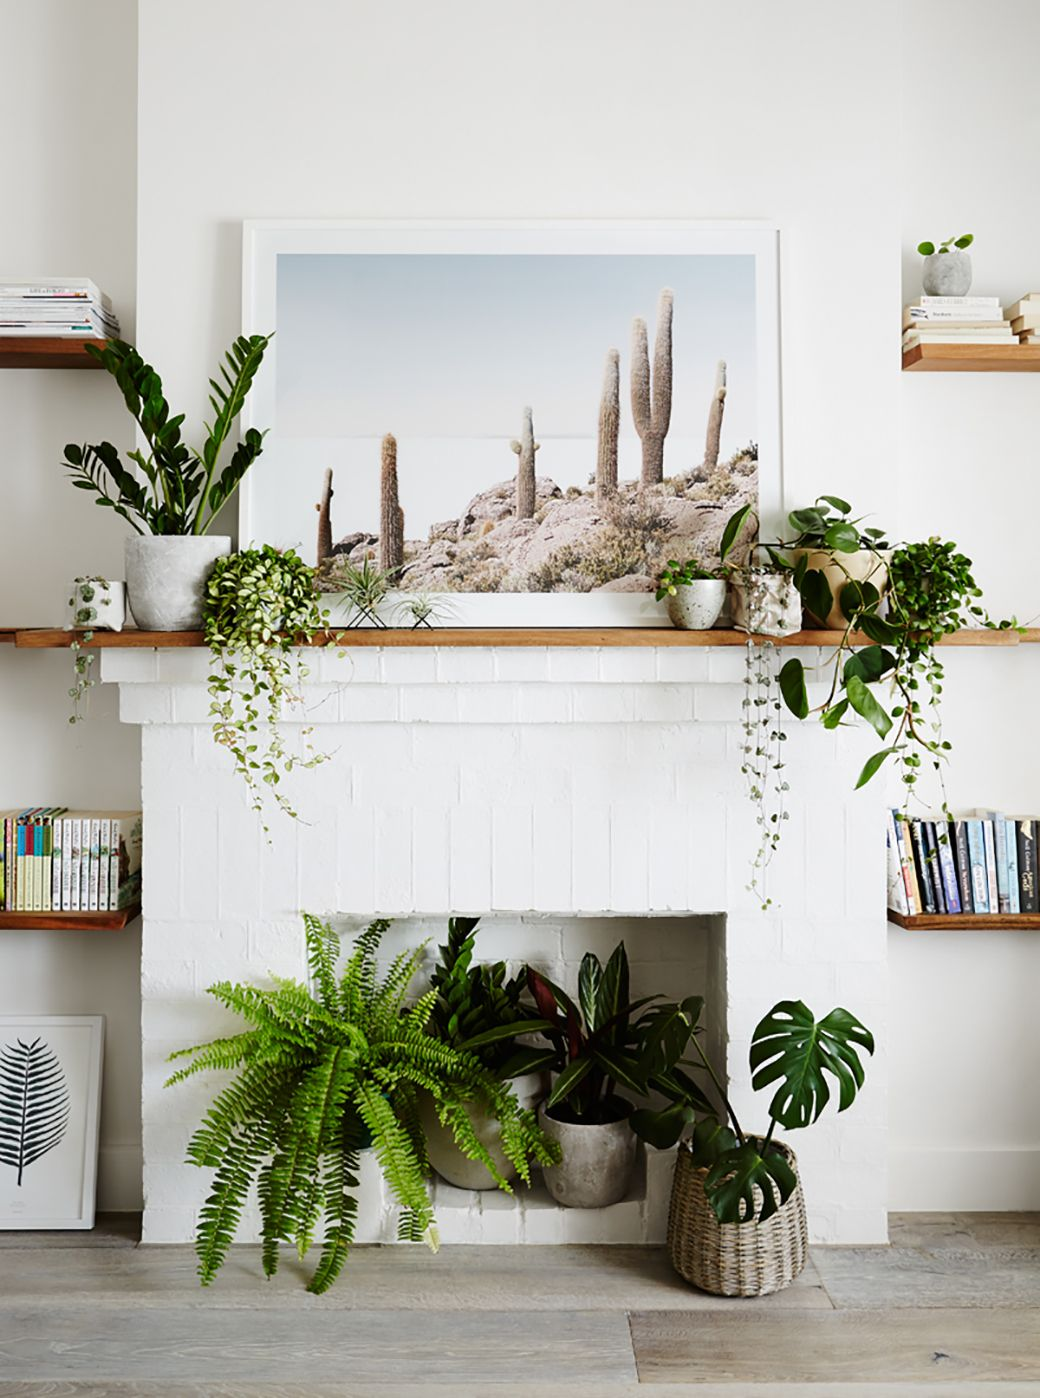 8 Stylish Ways To Decorate Live With Plants  Decor8 Firep